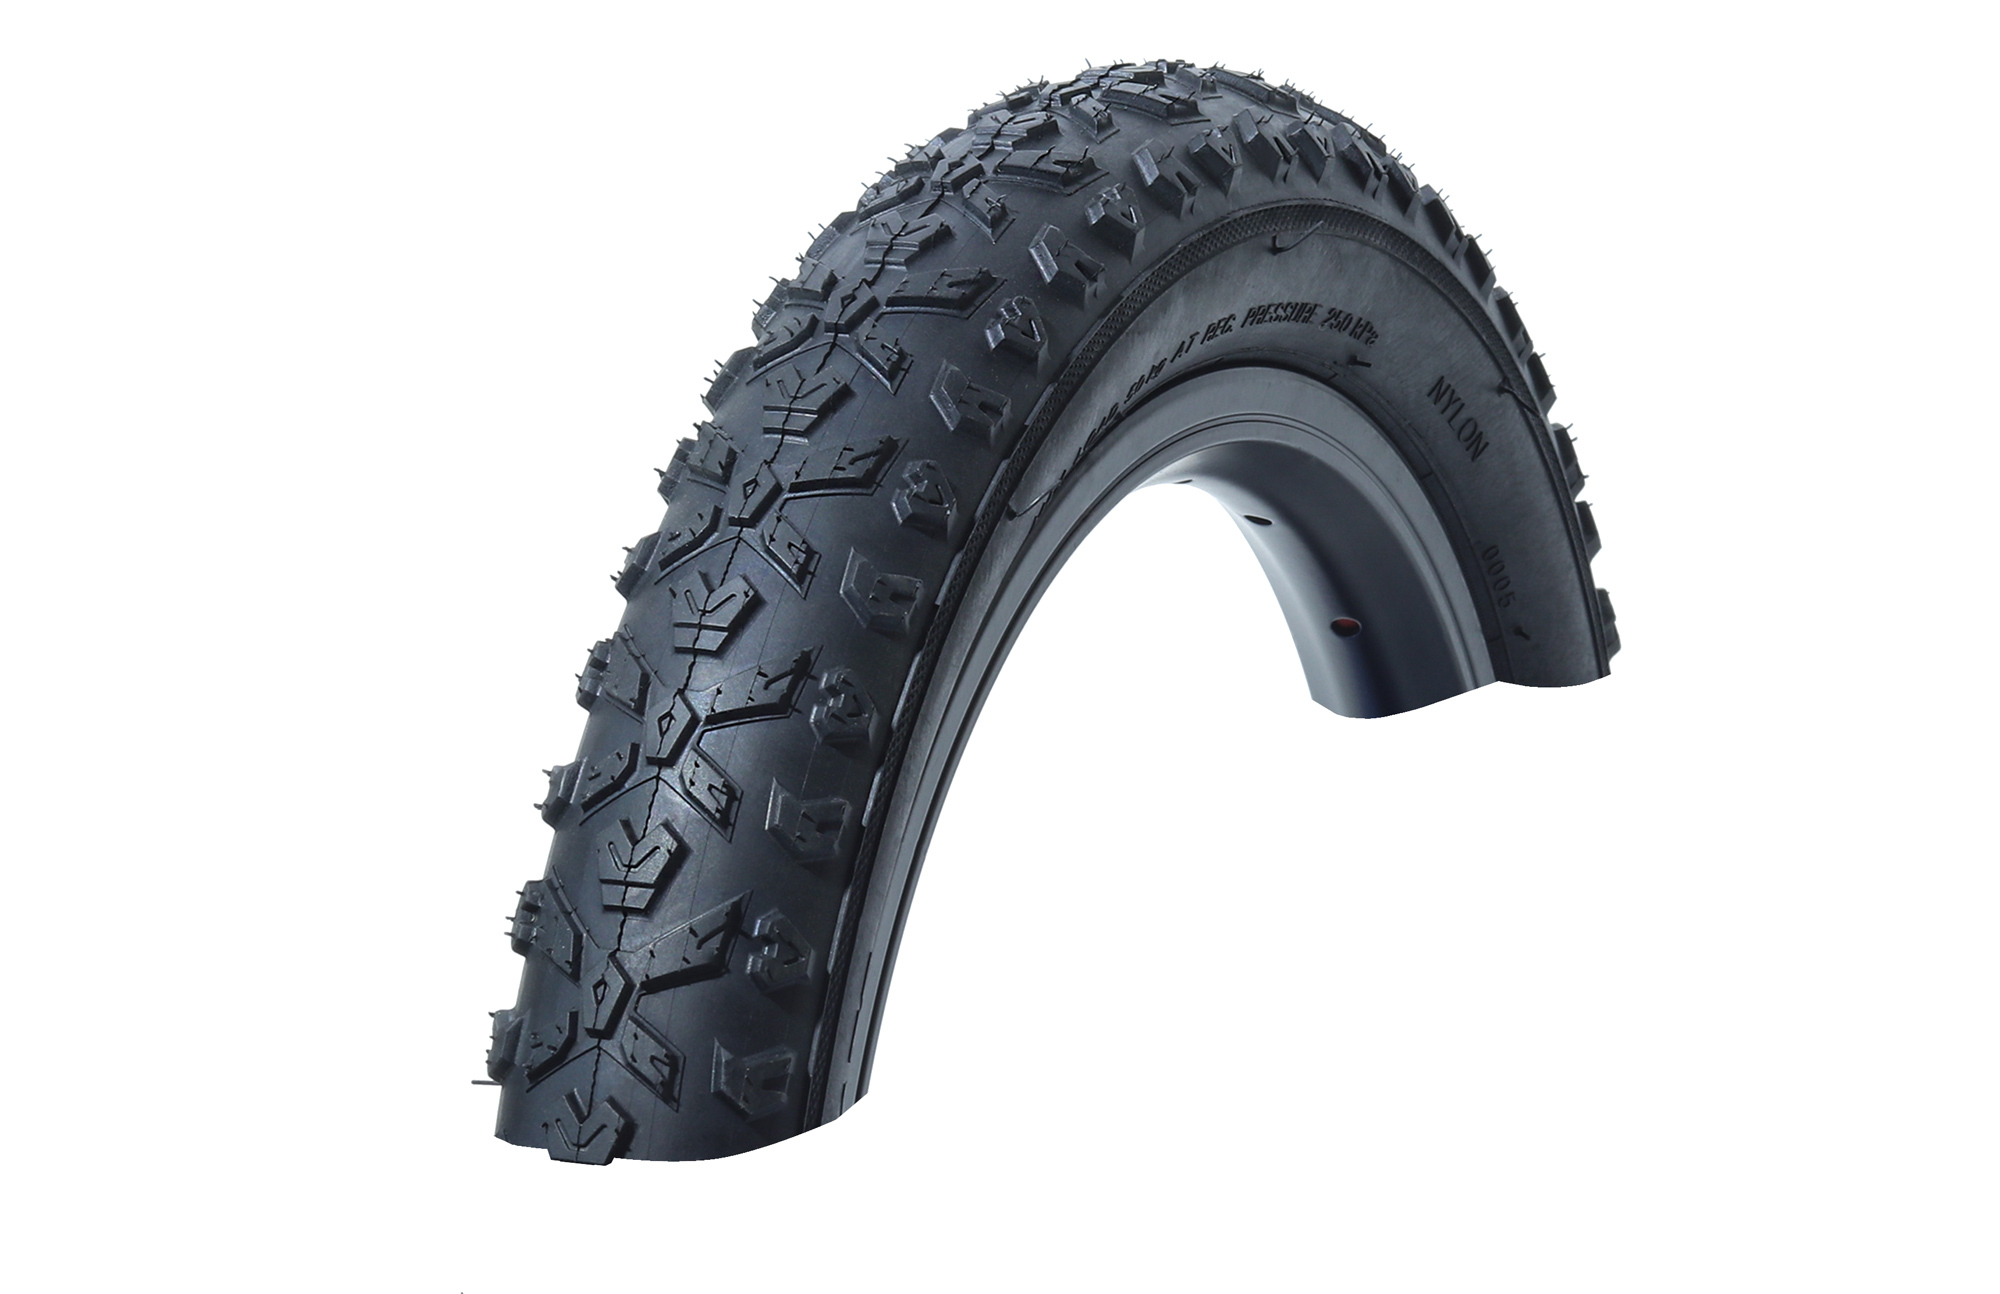 Покрышка Chao Yang X-Traction 14*1.95